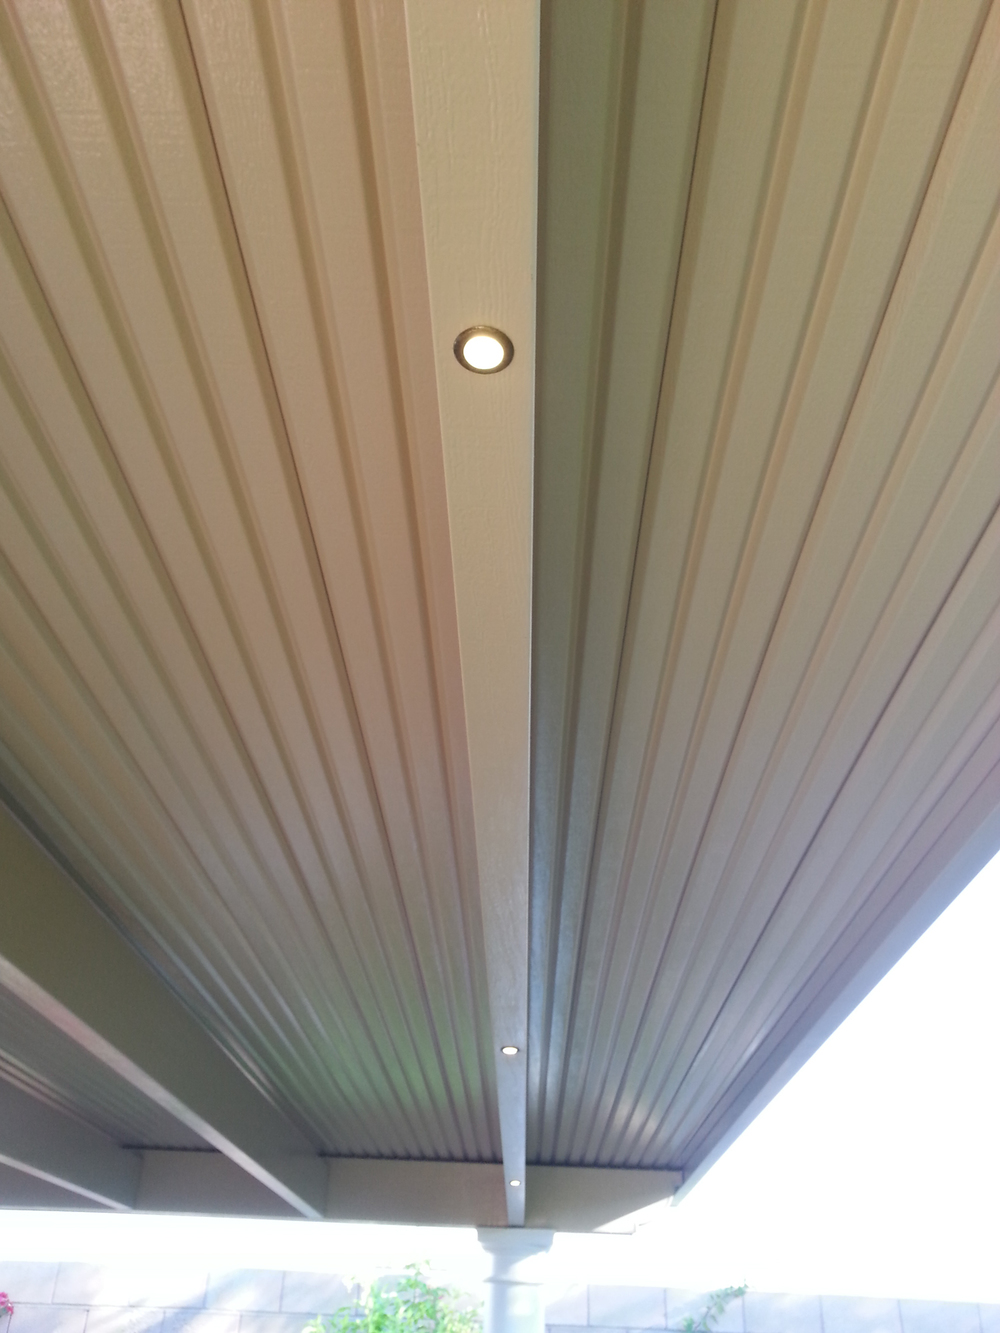 Outdoor Lighting for Patio Cover, 92211